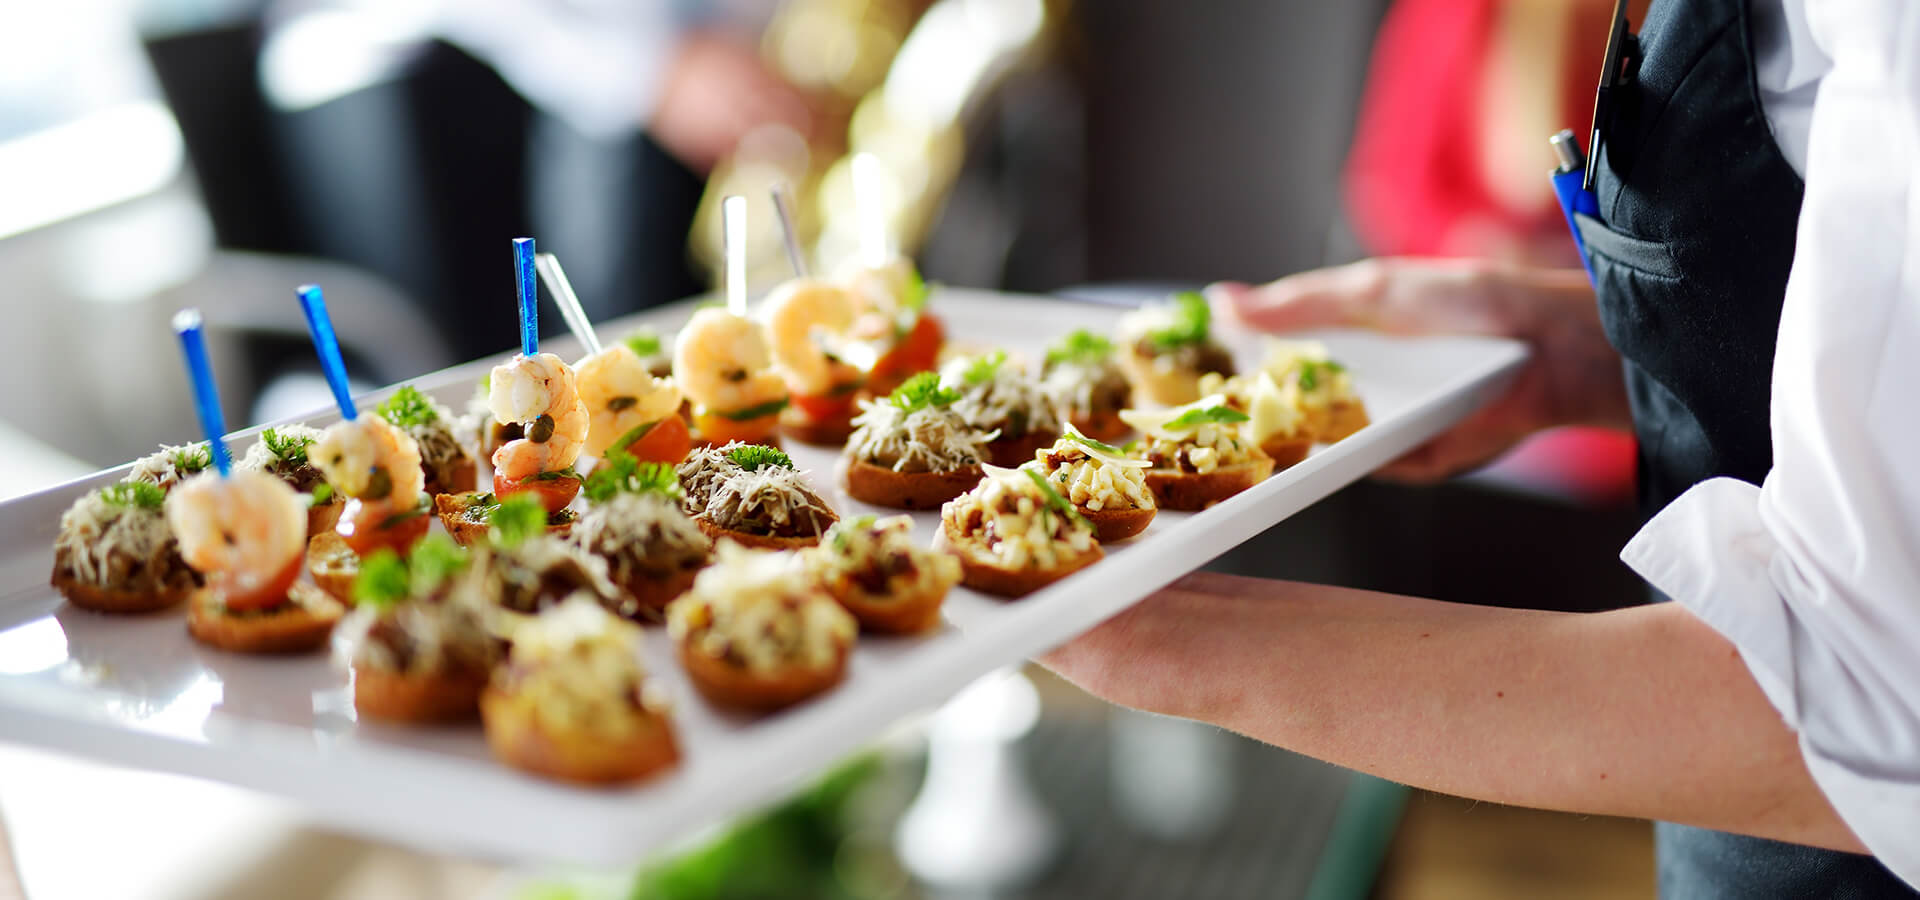 Ideas For School Christmas Party Food